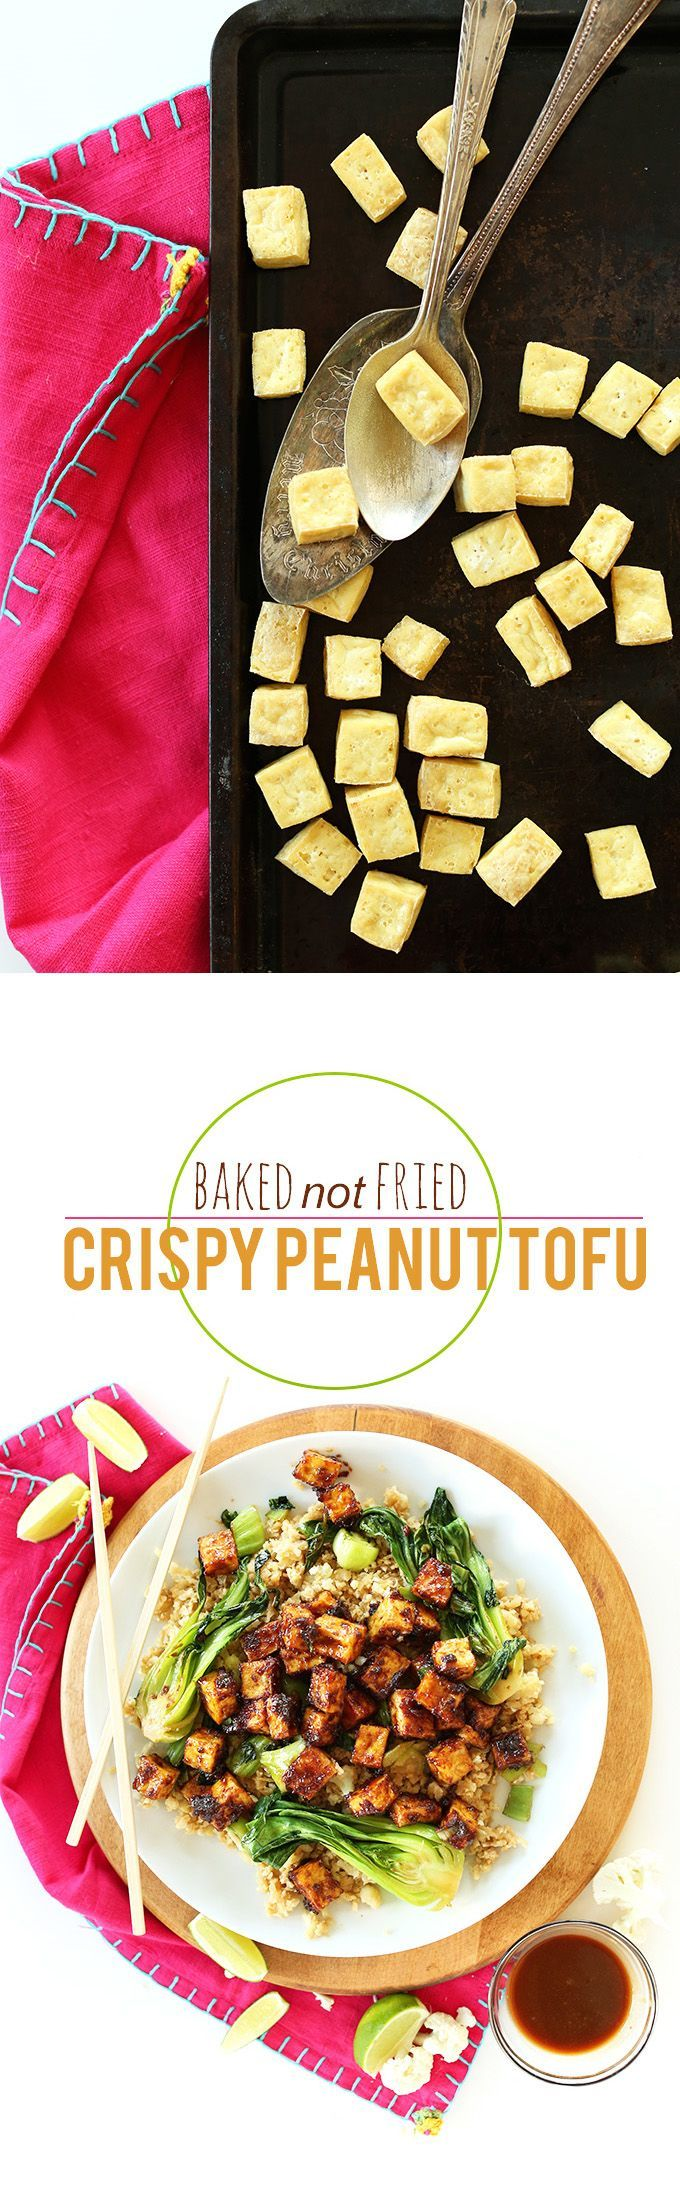 Baked Not Fried Crispy Tofu! 5-ingredient glaze, cauliflower rice, sauteed veggies - so healthy and delicious!